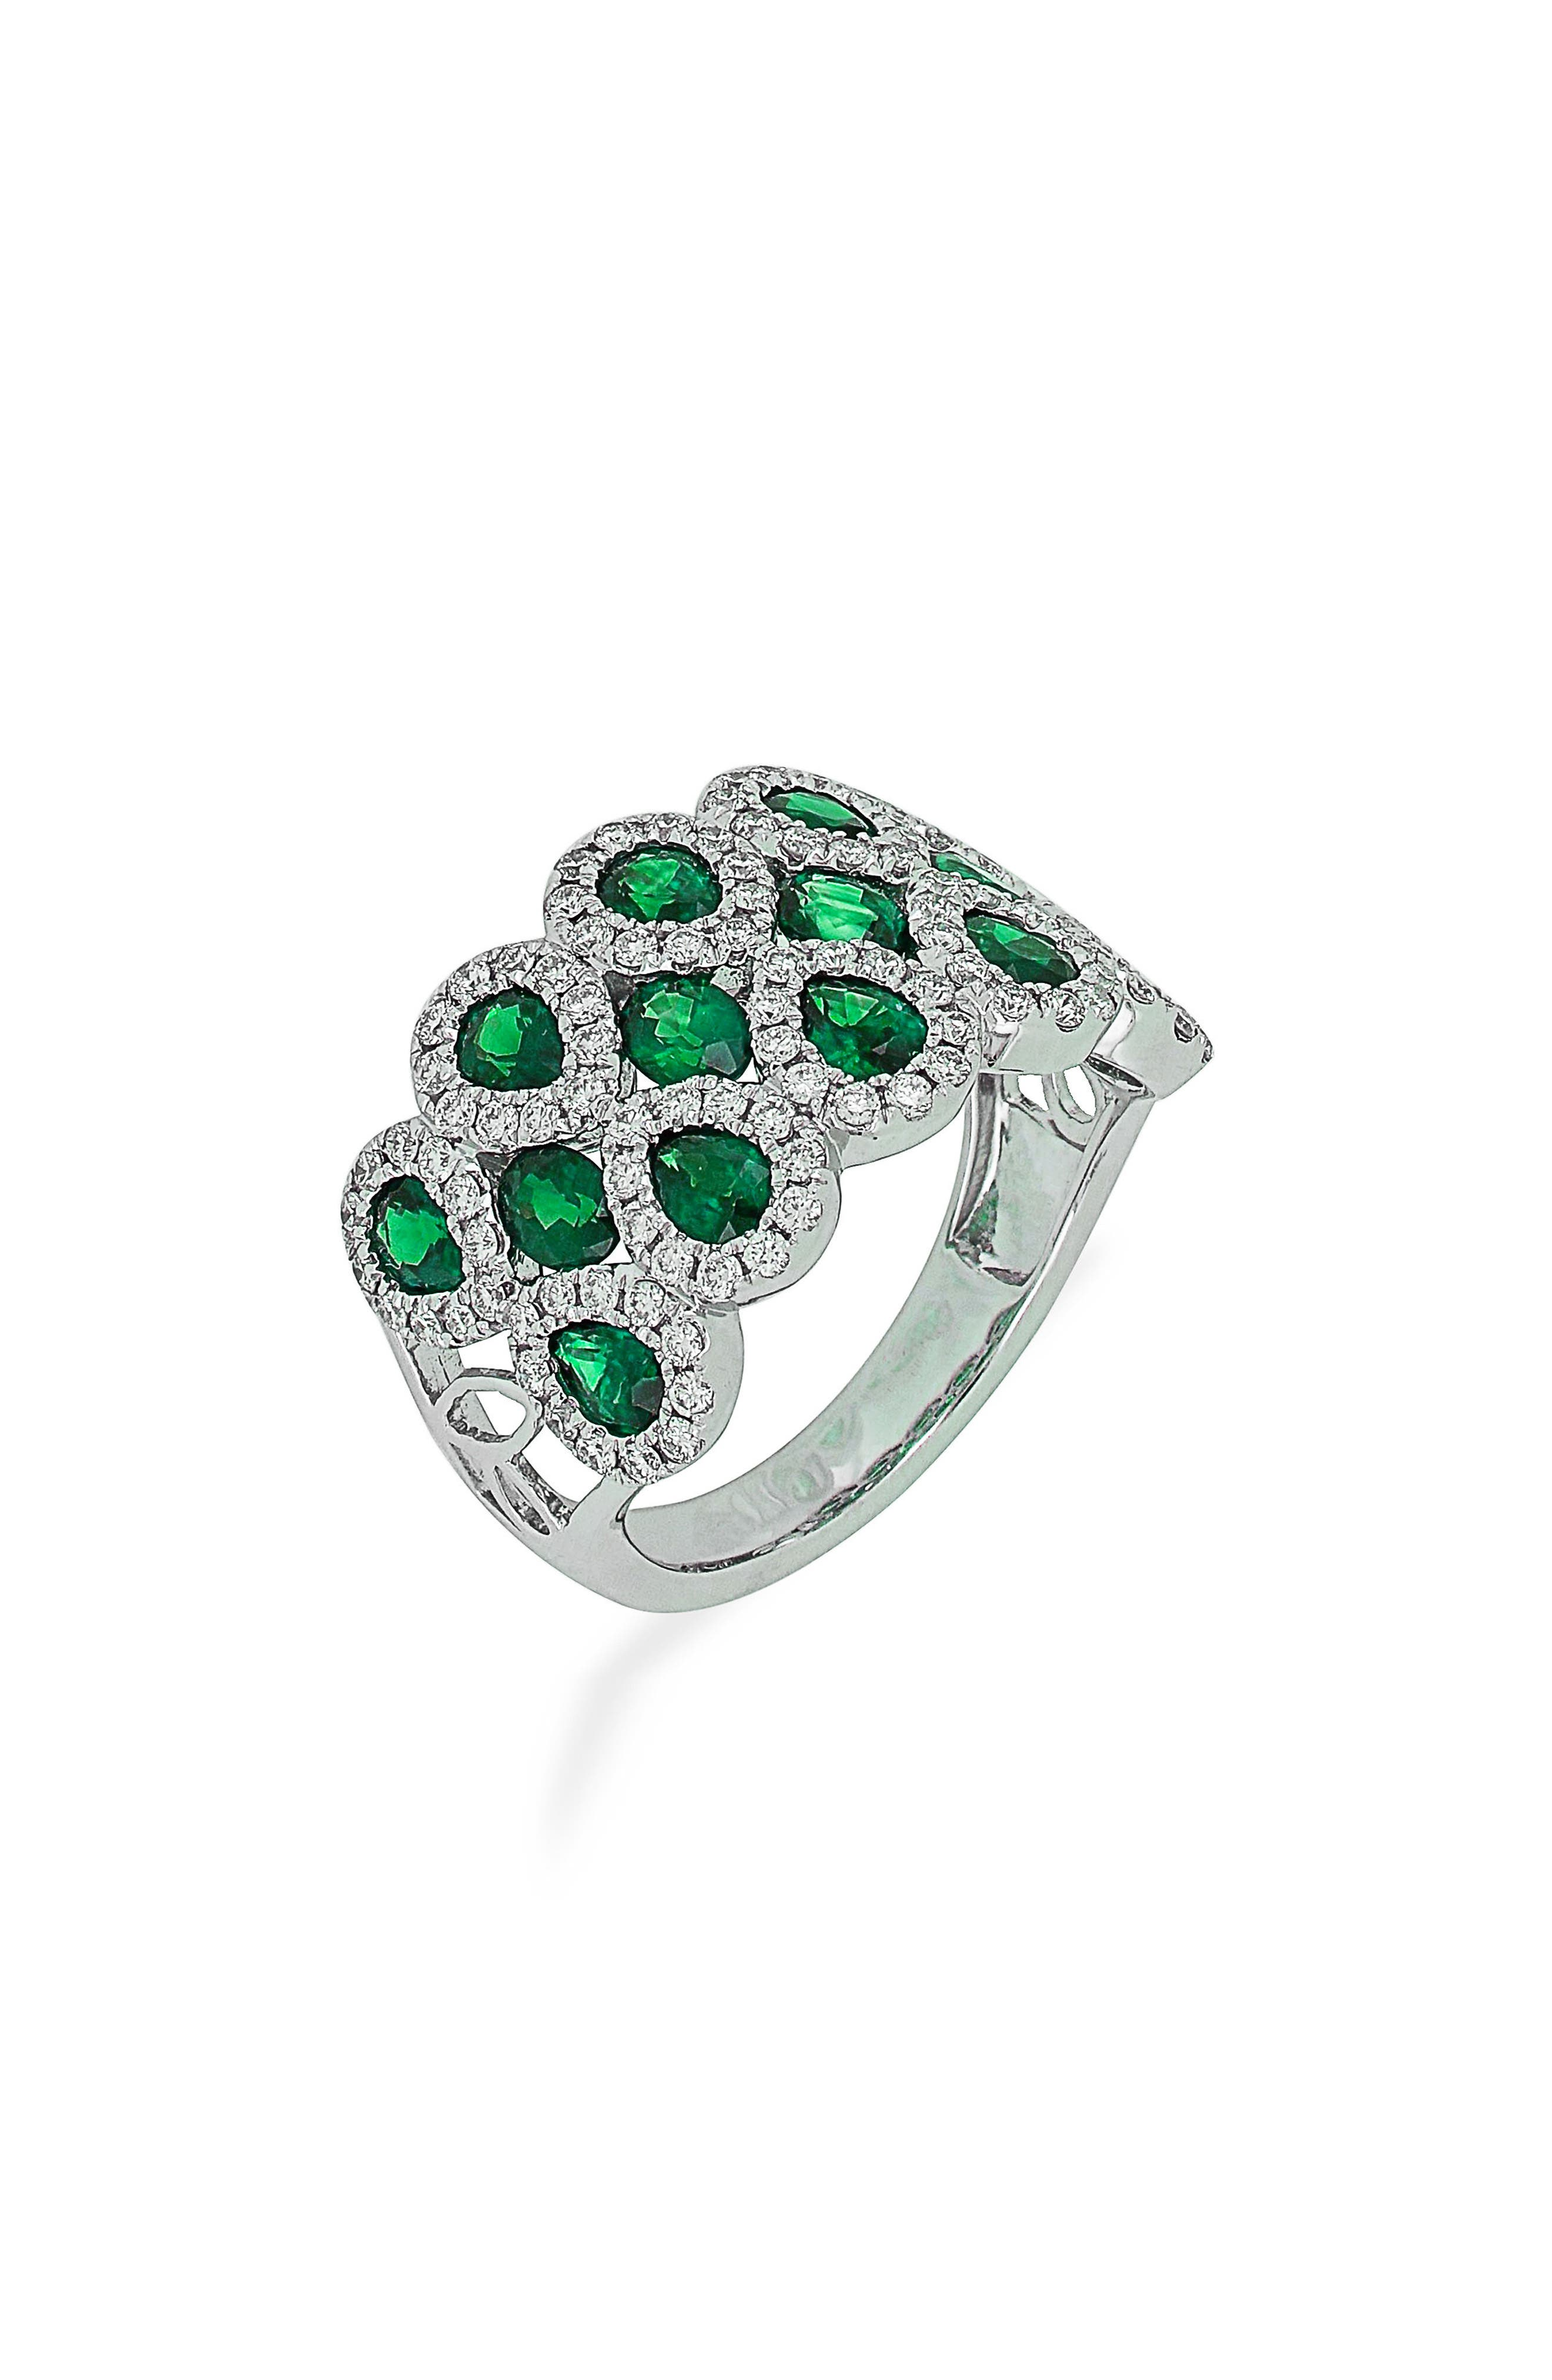 Alternate Image 1 Selected - Bony Levy Emerald & Diamond Ring (Nordstrom Exclusive)